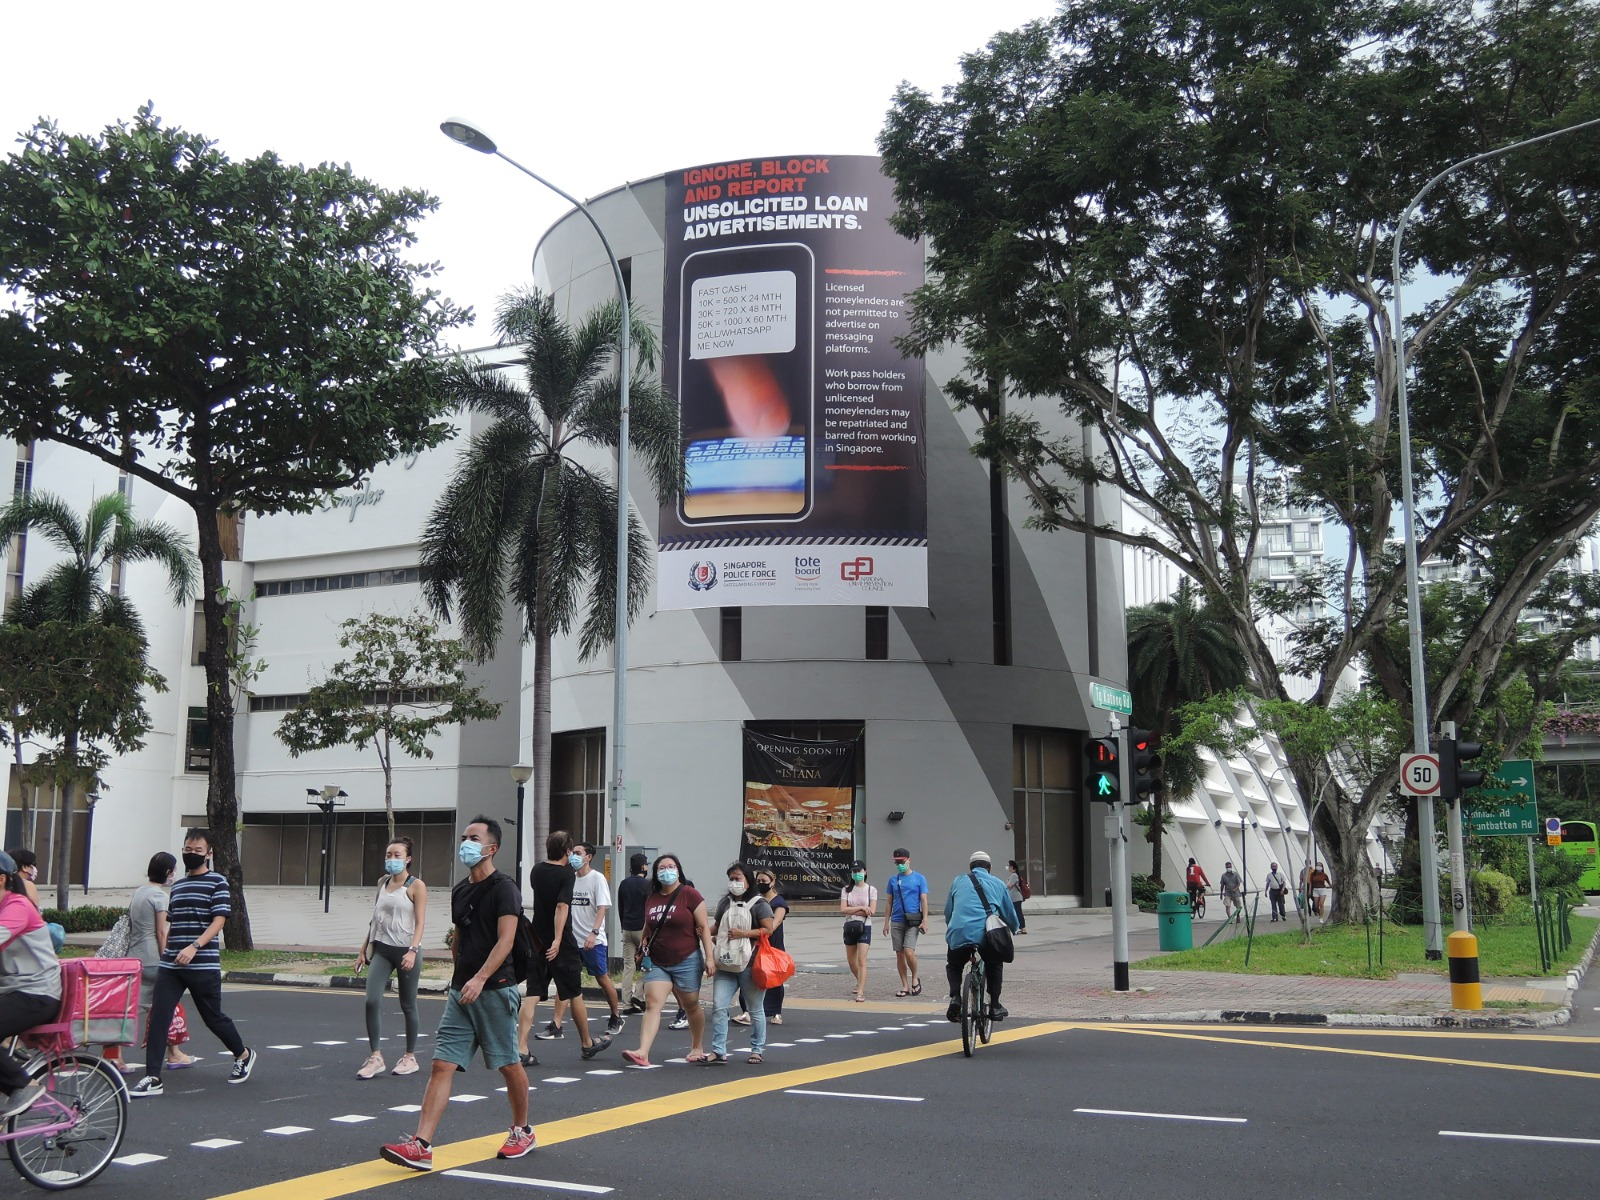 Strategic Outdoor Advertising to fight scams